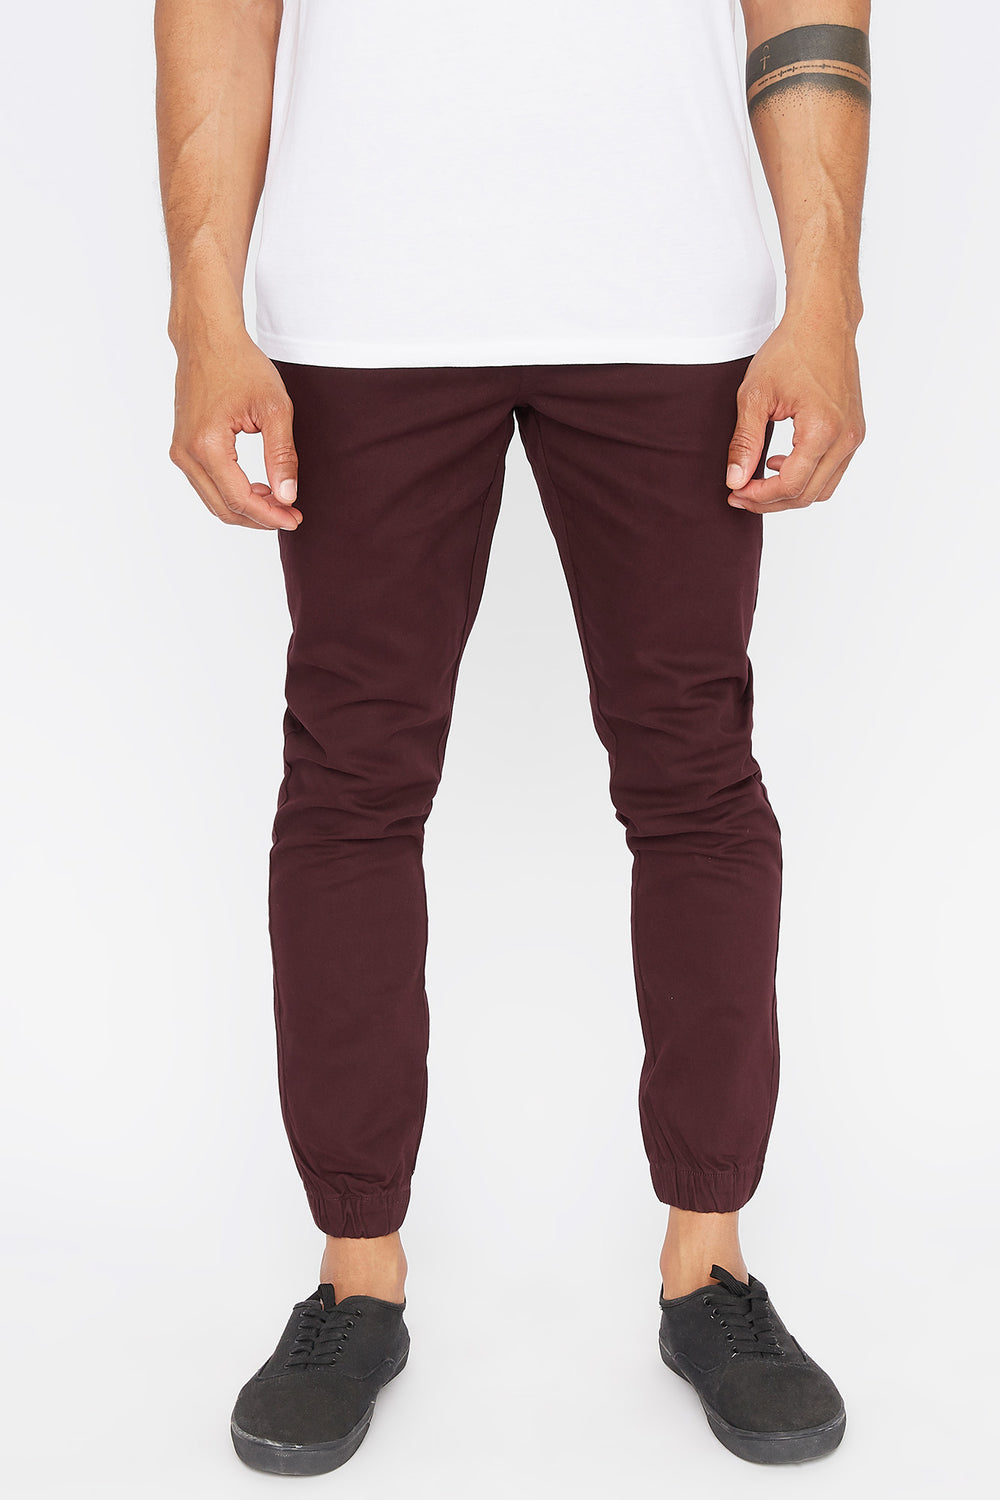 West49 Mens Solid Twill Basic Jogger Burgundy